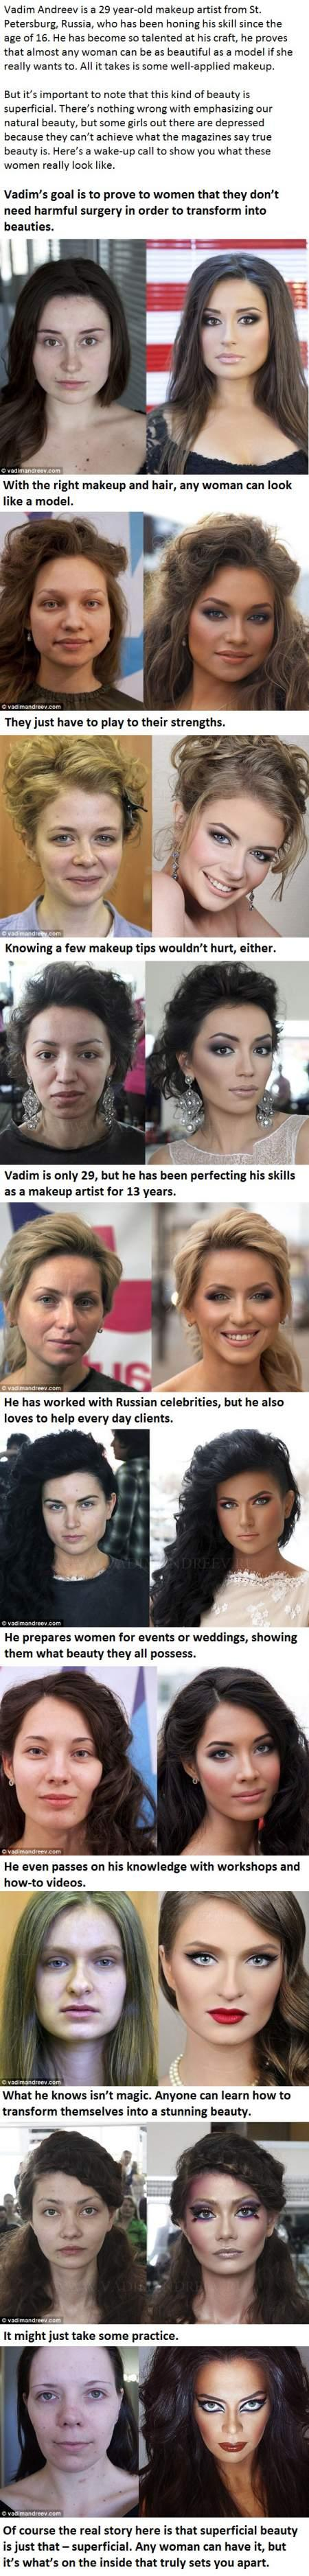 here is a dose of reality, check out these before and after photos and then ask yourself if your standard of beauty is really realistic or not